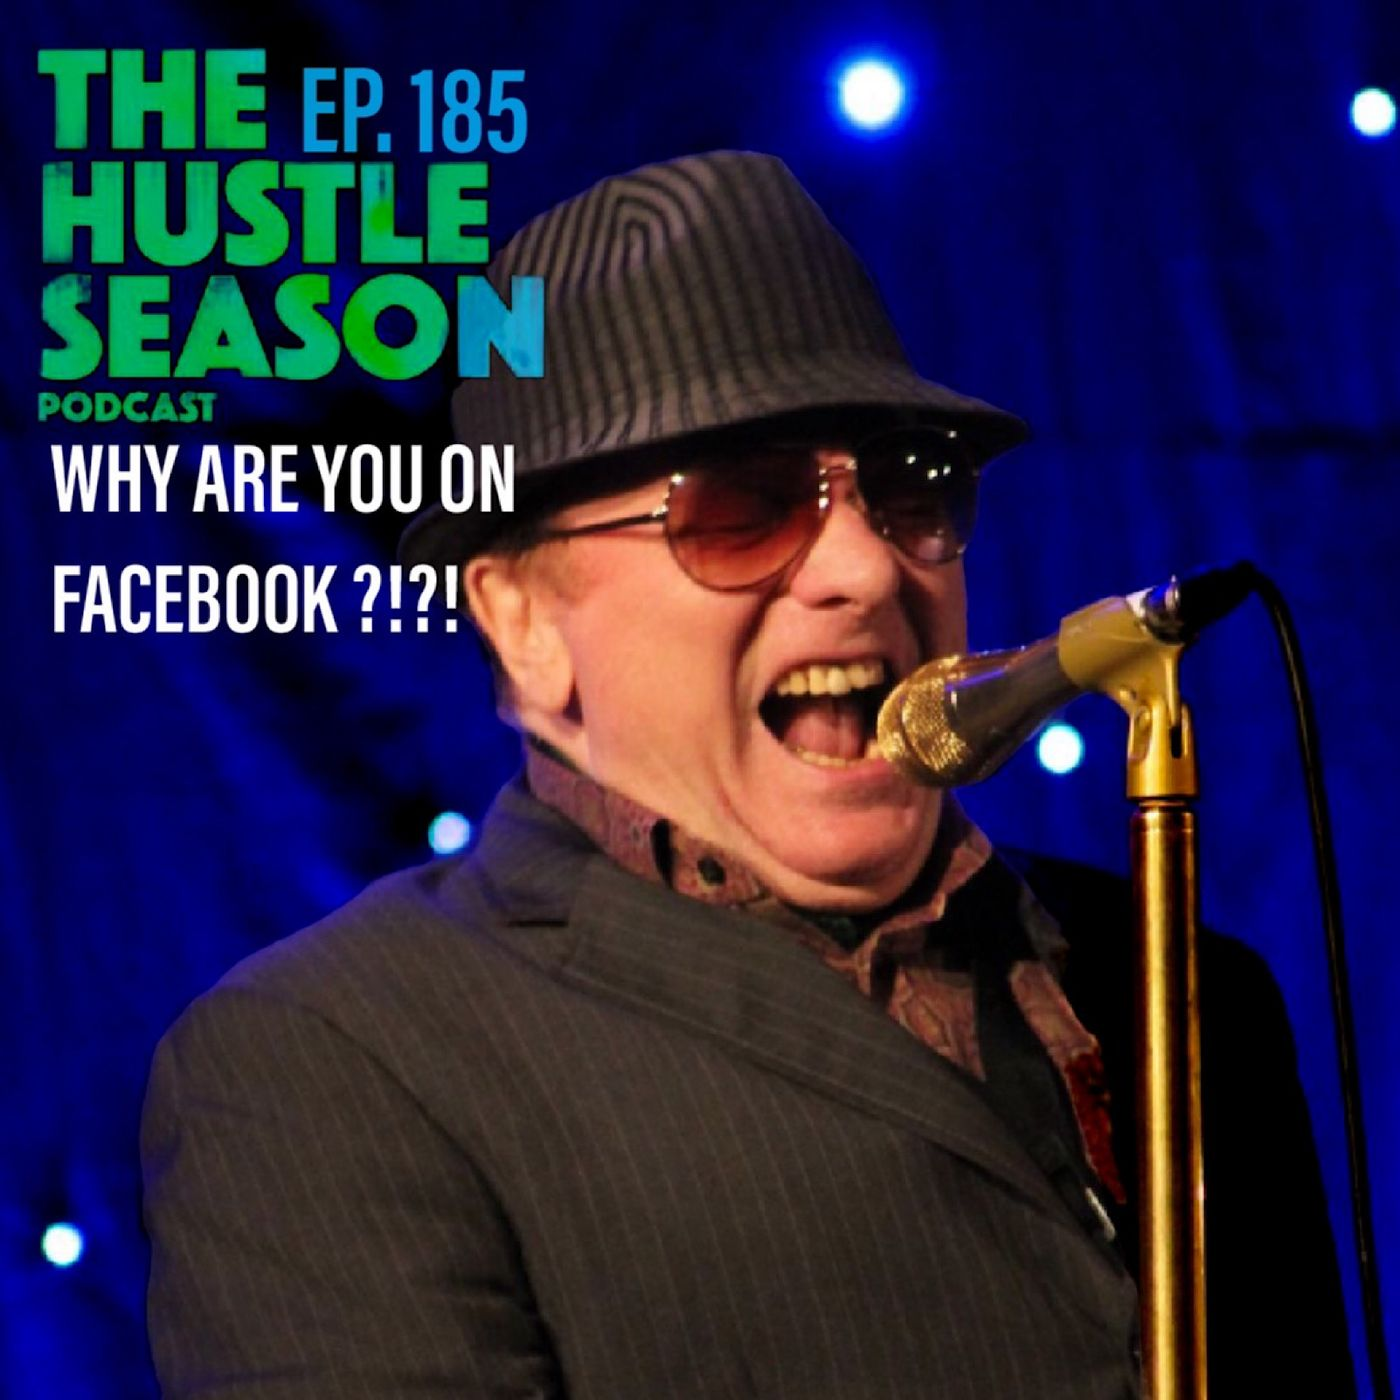 The Hustle Season: Ep. 185 Why Are You On Facebook?!?!